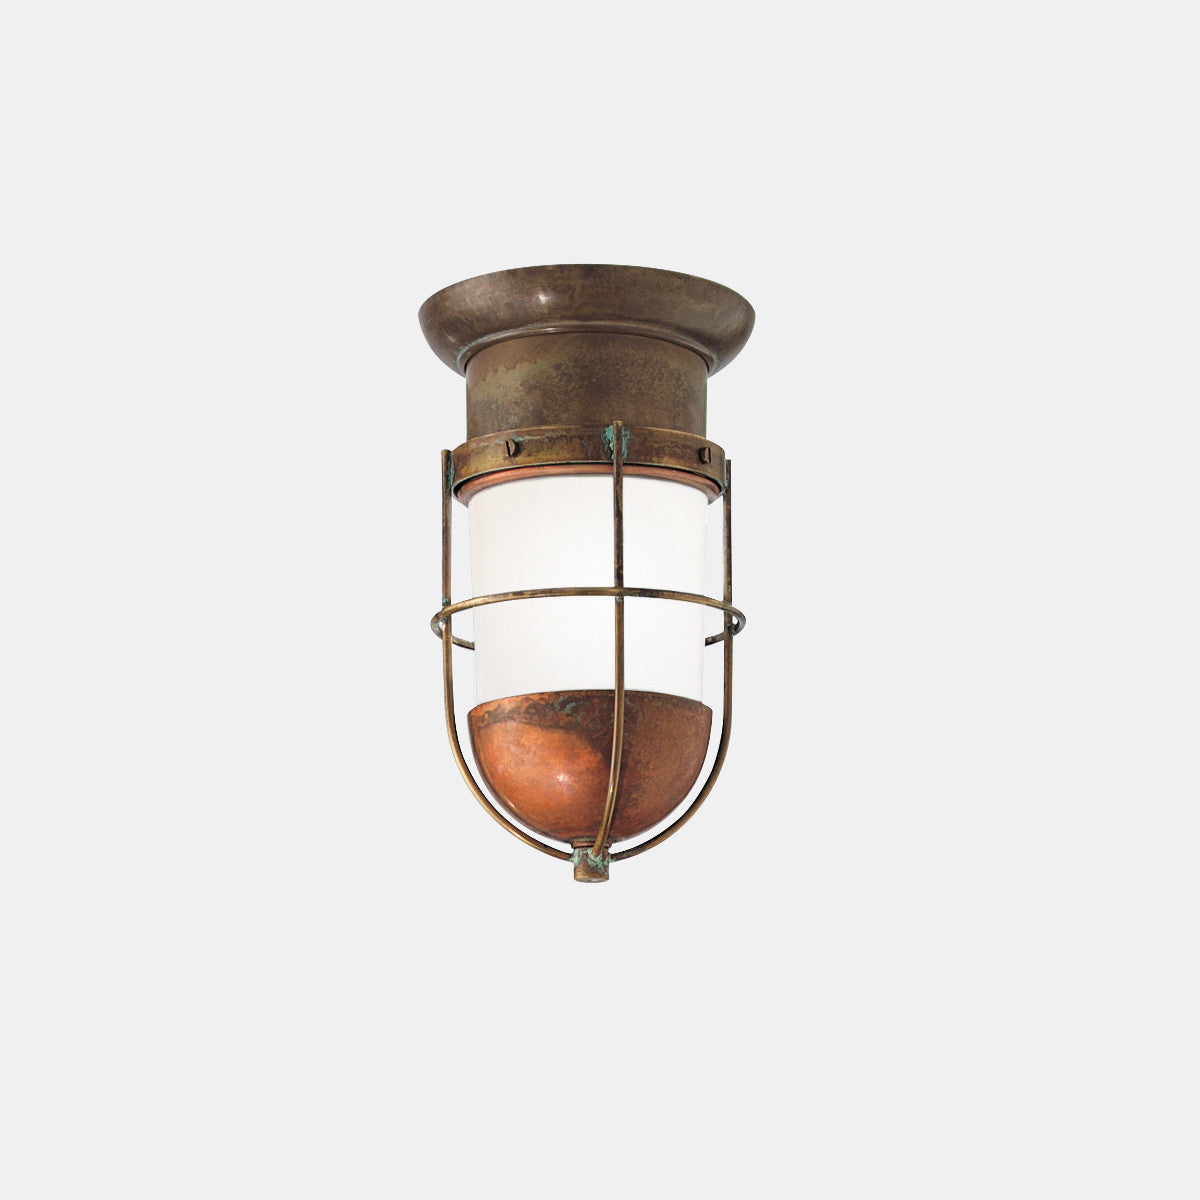 GARDEN Outdoor Ceiling Light 245.20